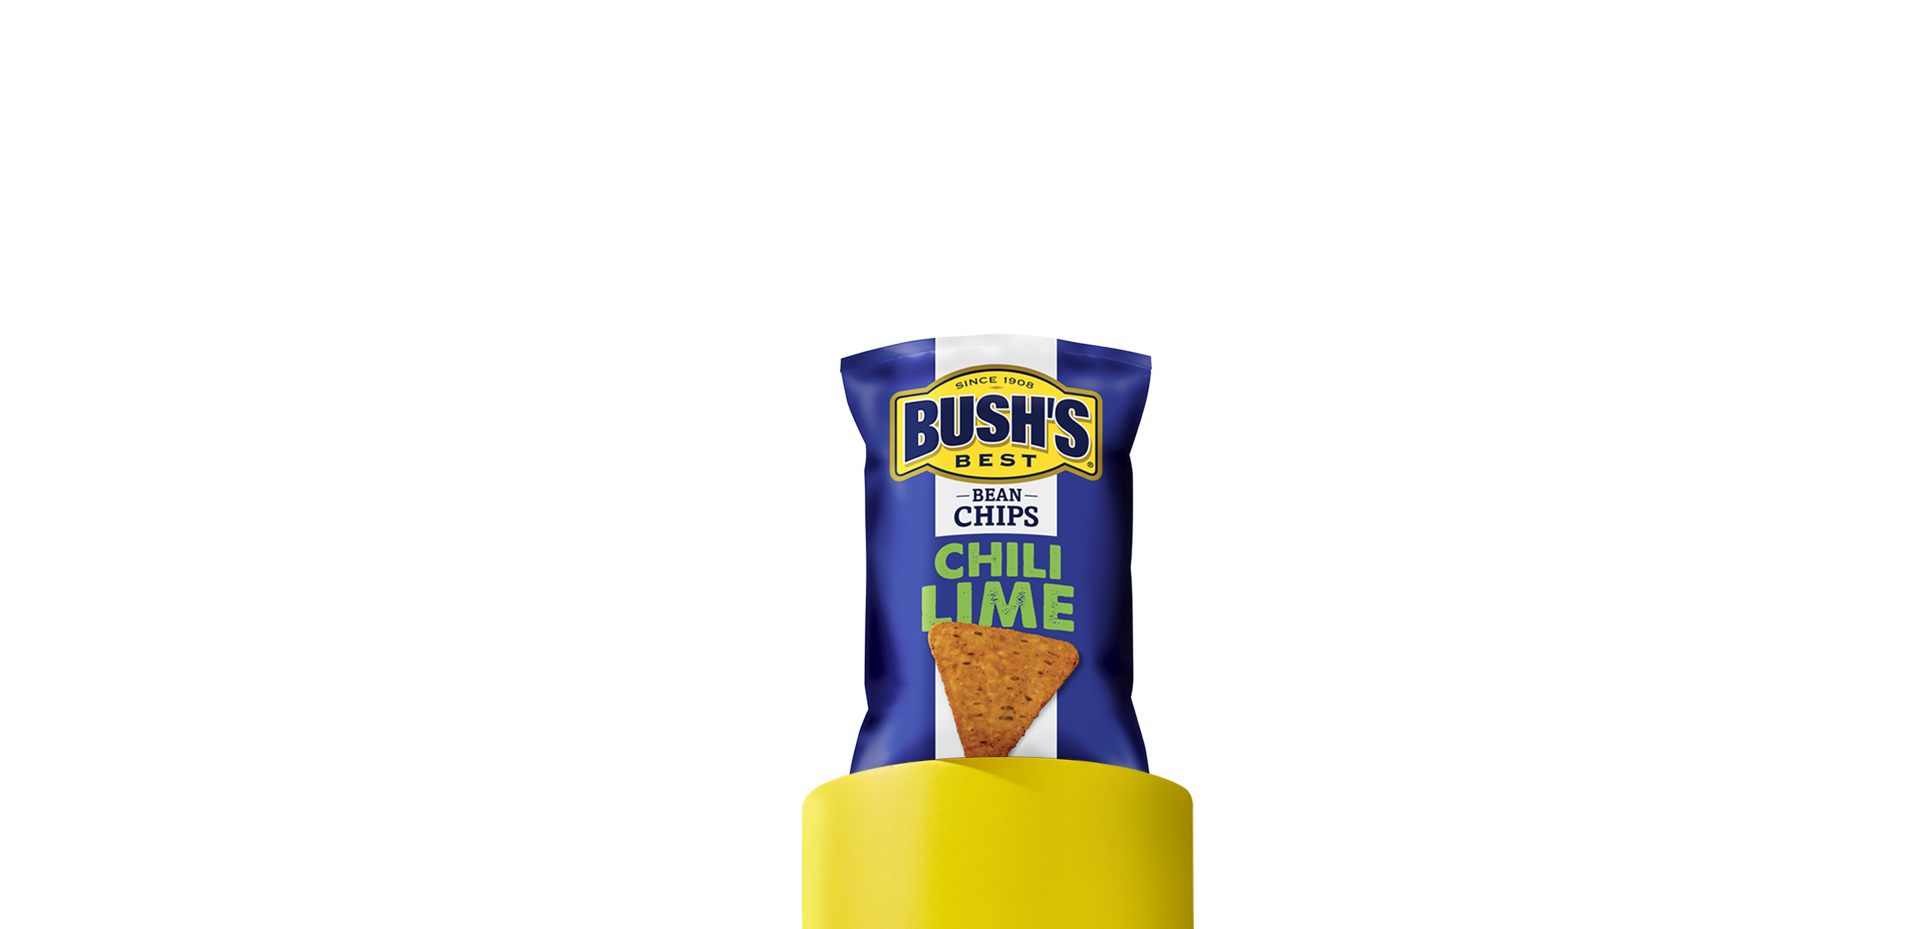 A blue and white bag of Bush's Best Chili Lime Bean Chips sitting on a yellow column